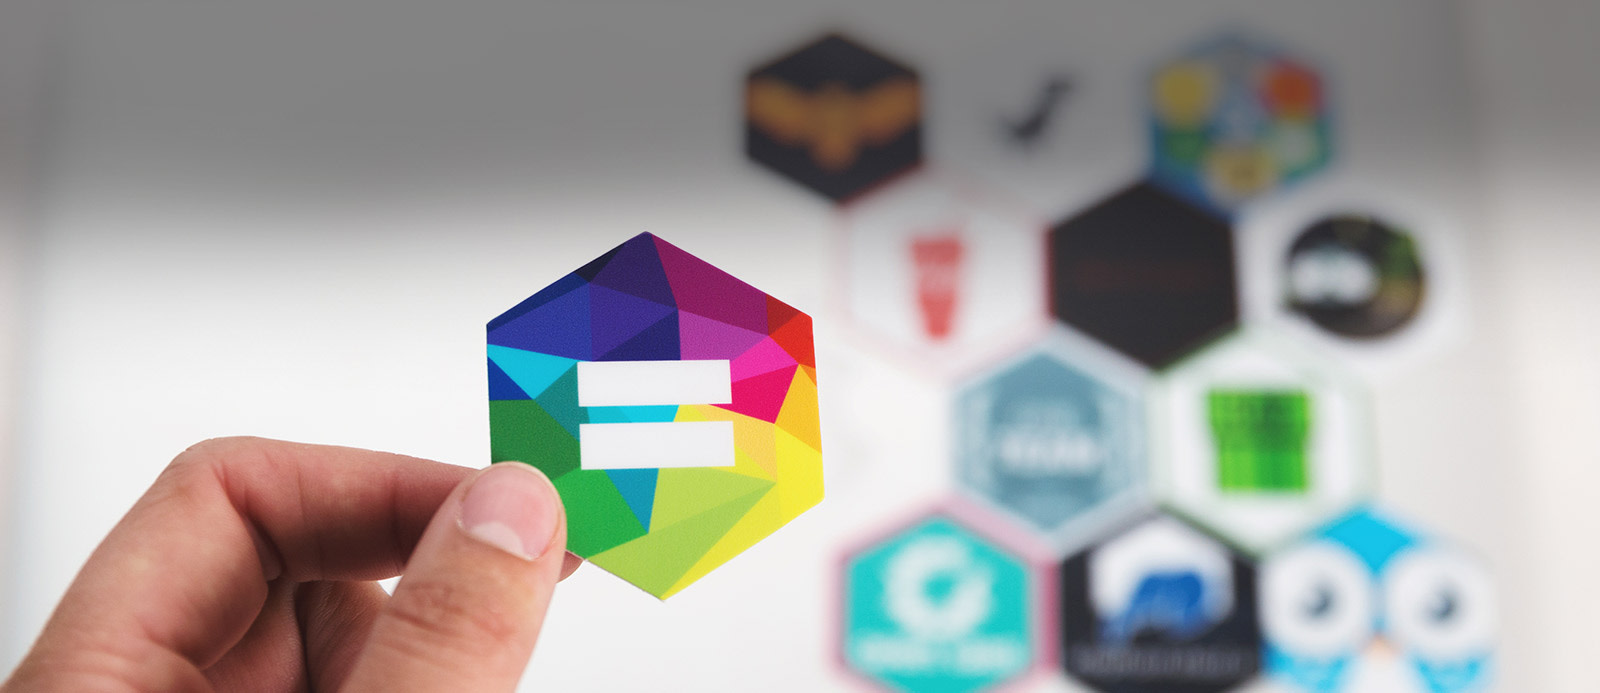 Hexagon stickers by Sticker Mule